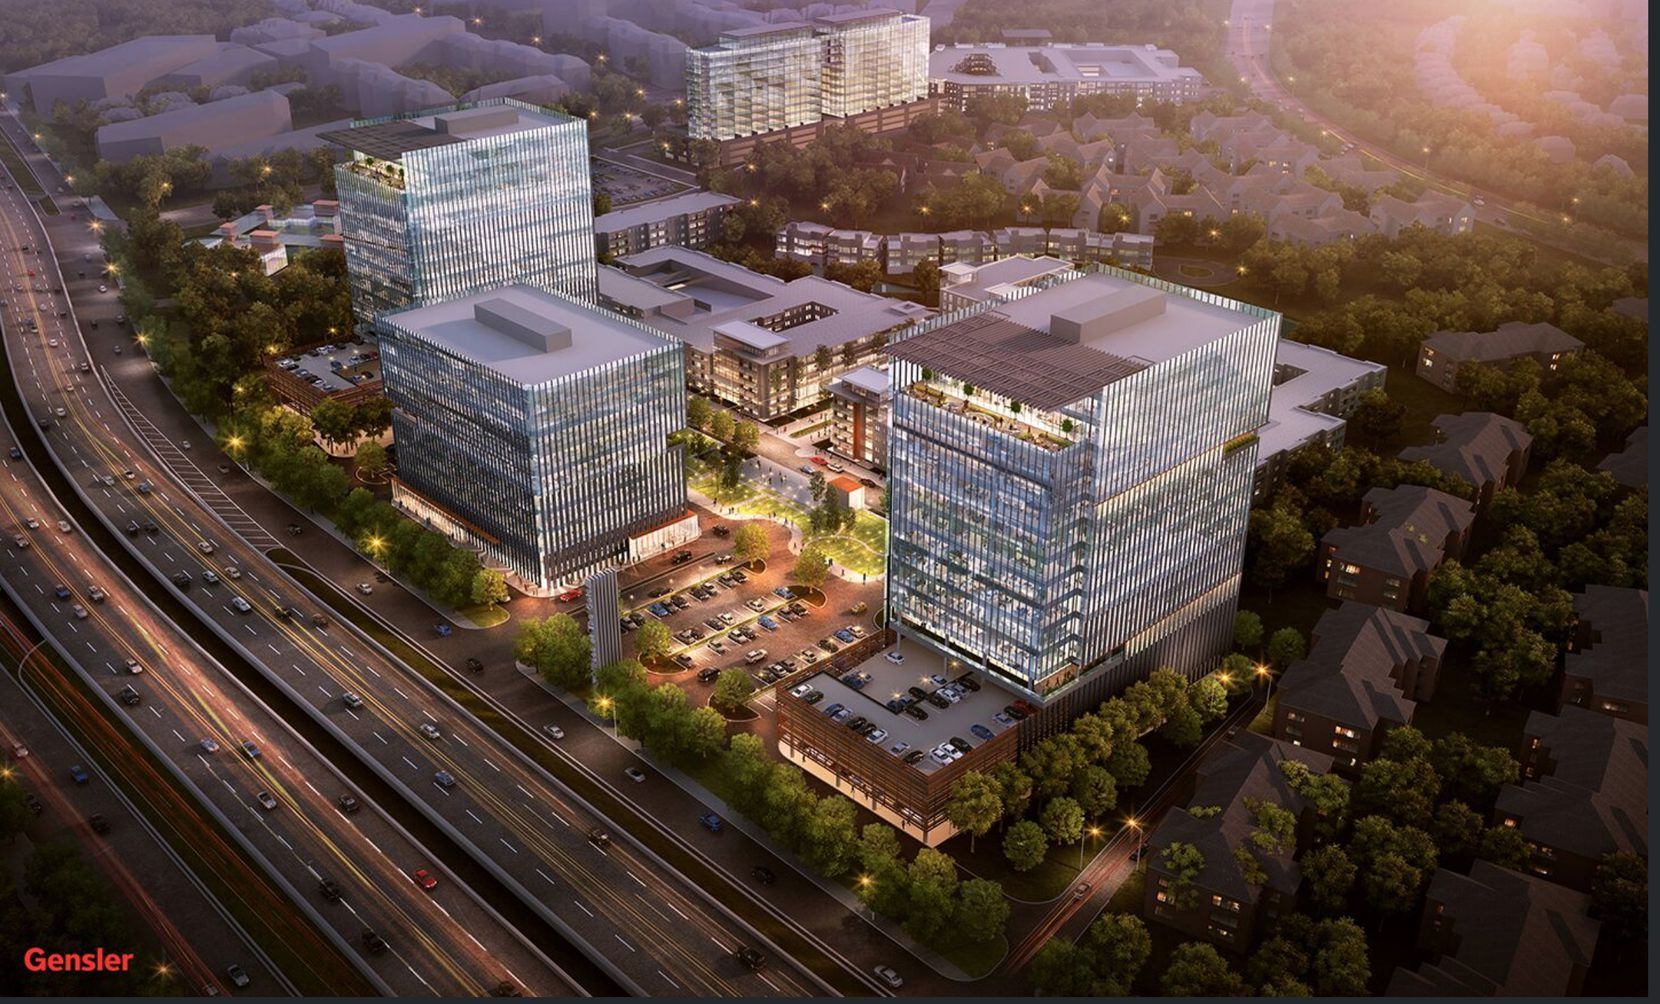 The Auspire development, shown in a rendering, includes three office buildings plus retail space.